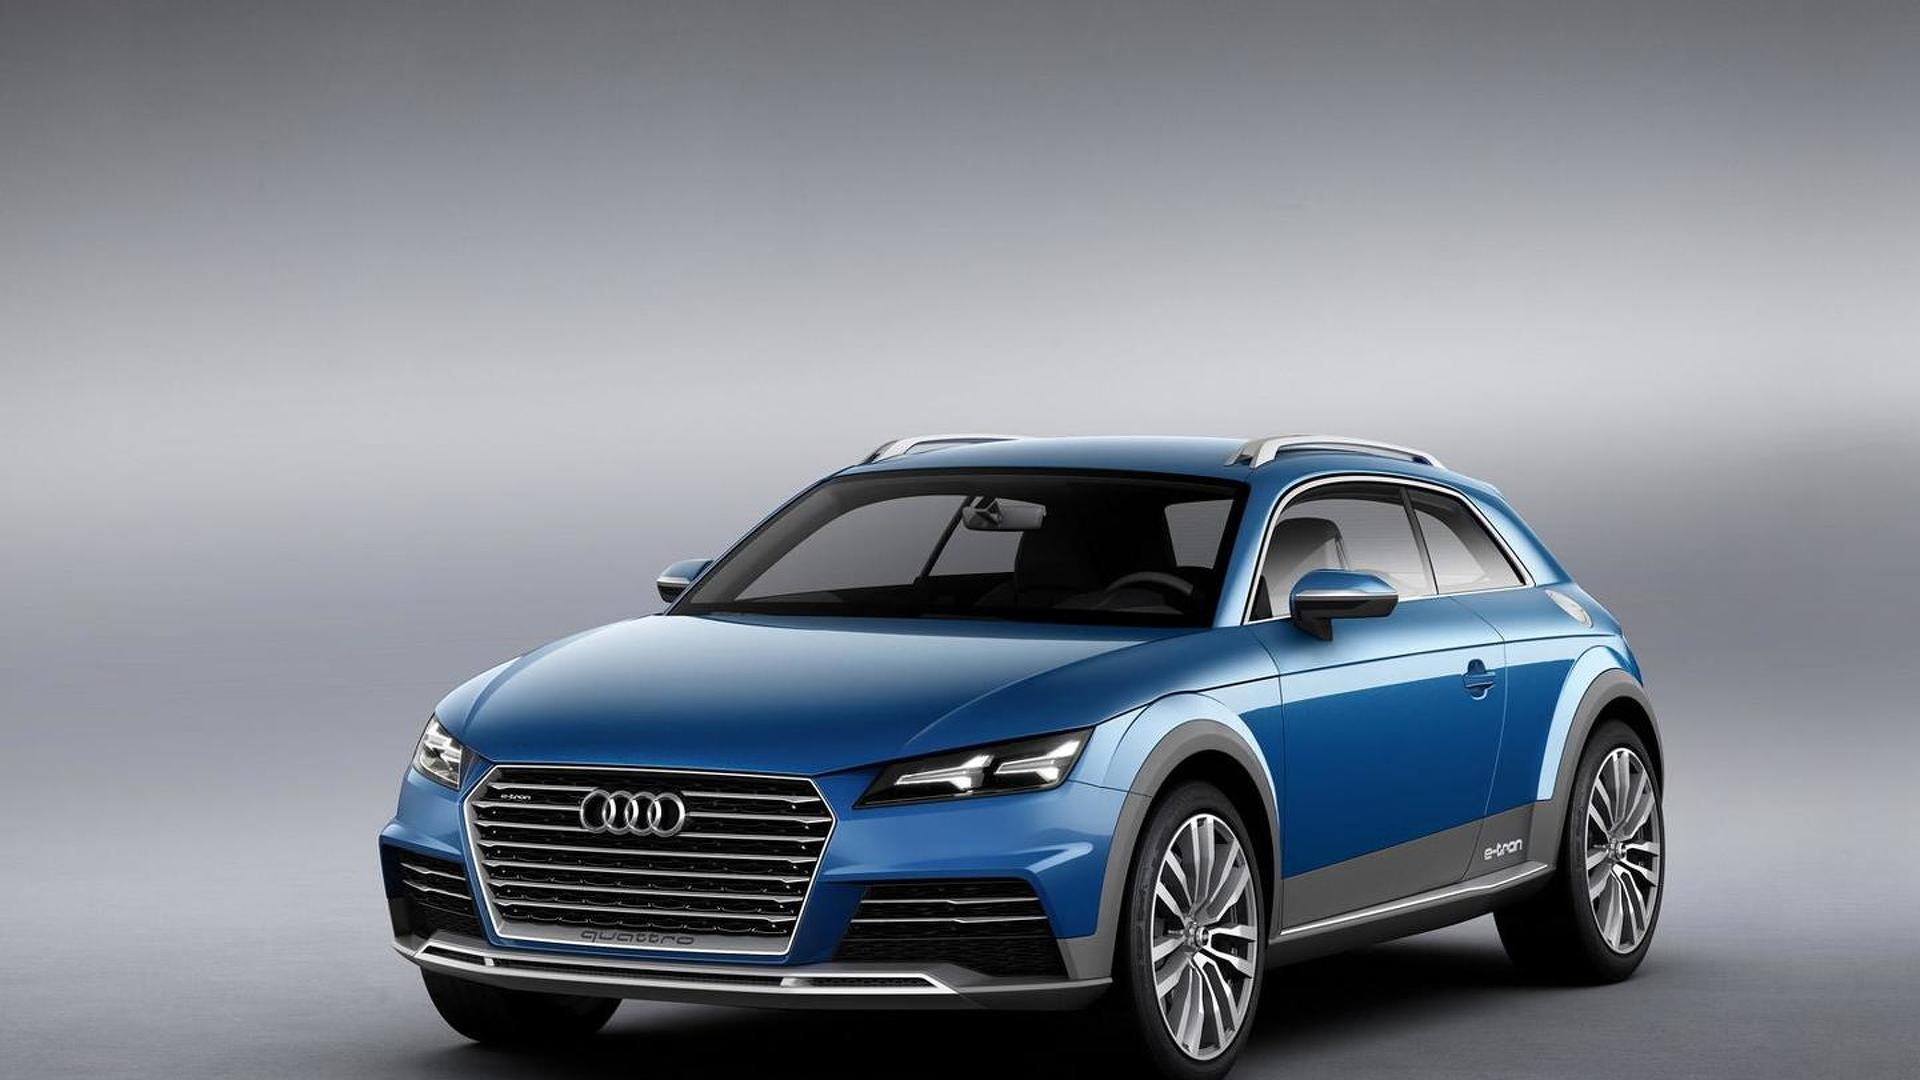 Audi Allroad Shooting Brake Concept Officially Revealed With 408 Hp Plug In Hybrid System